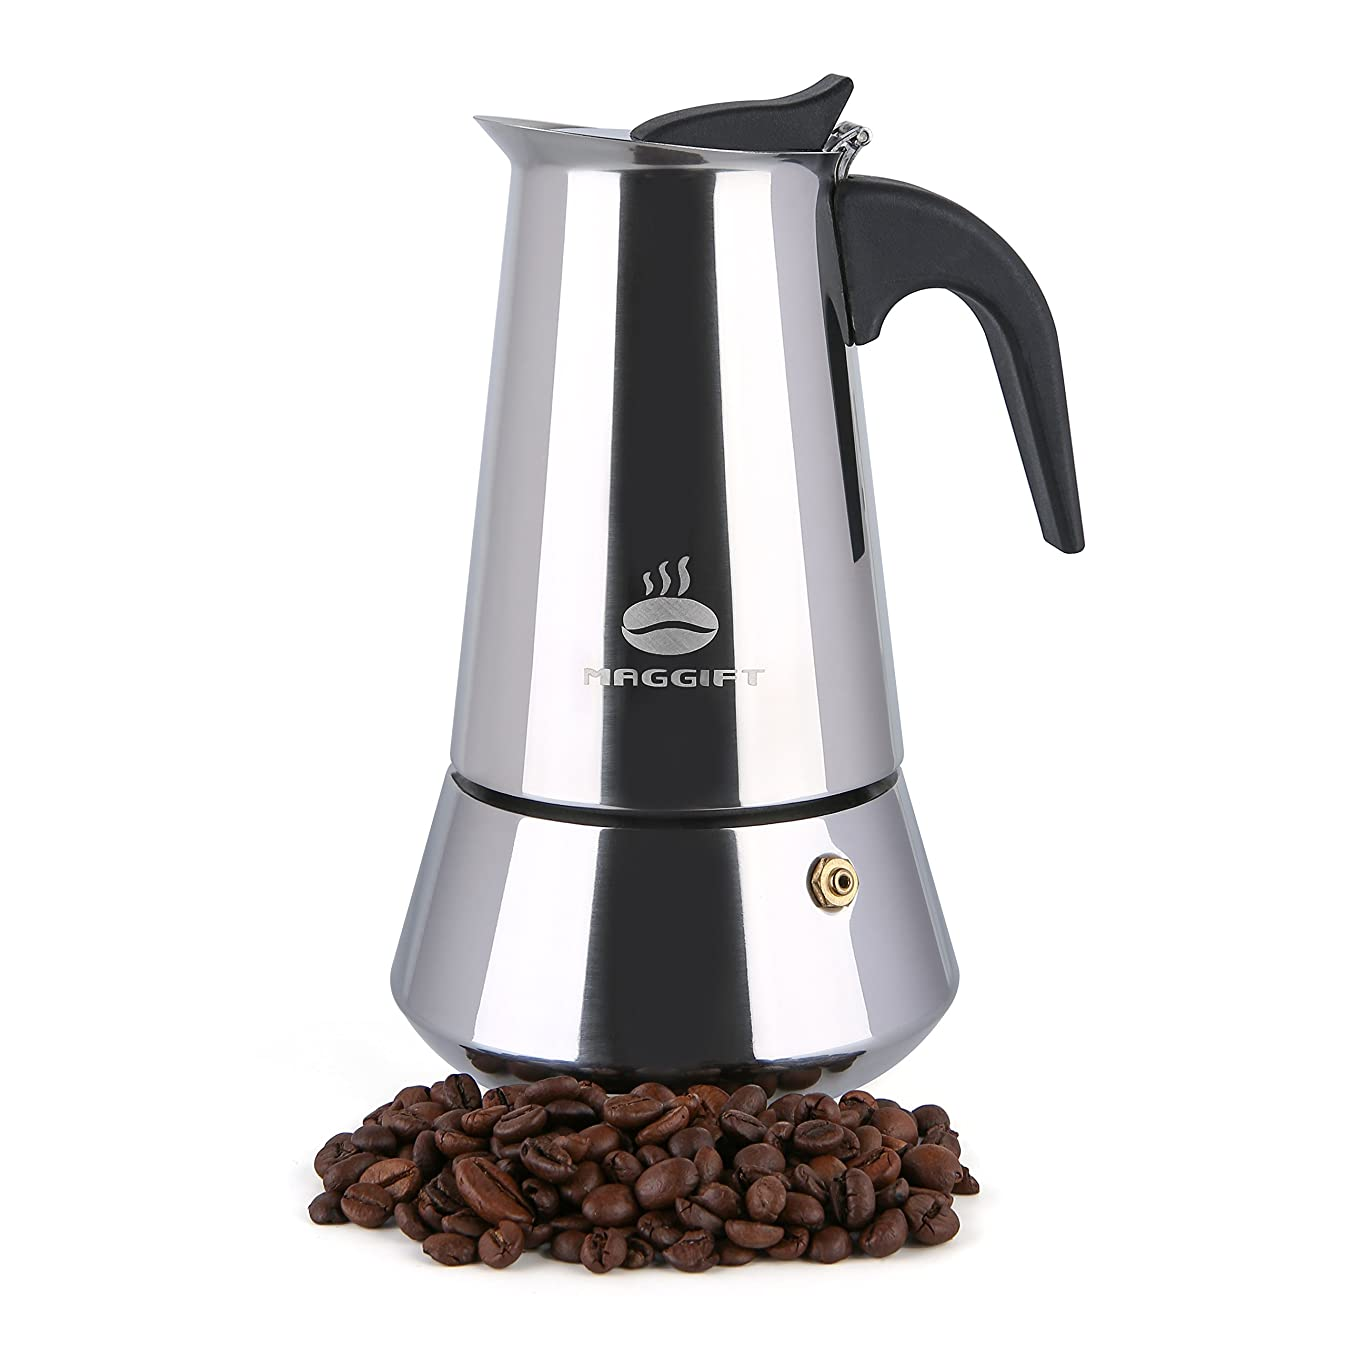 Maggift Coffee Stovetop Espresso Maker, Stainless Steel for Gas or Electric Stove Top Moka Pot (6 Cup)